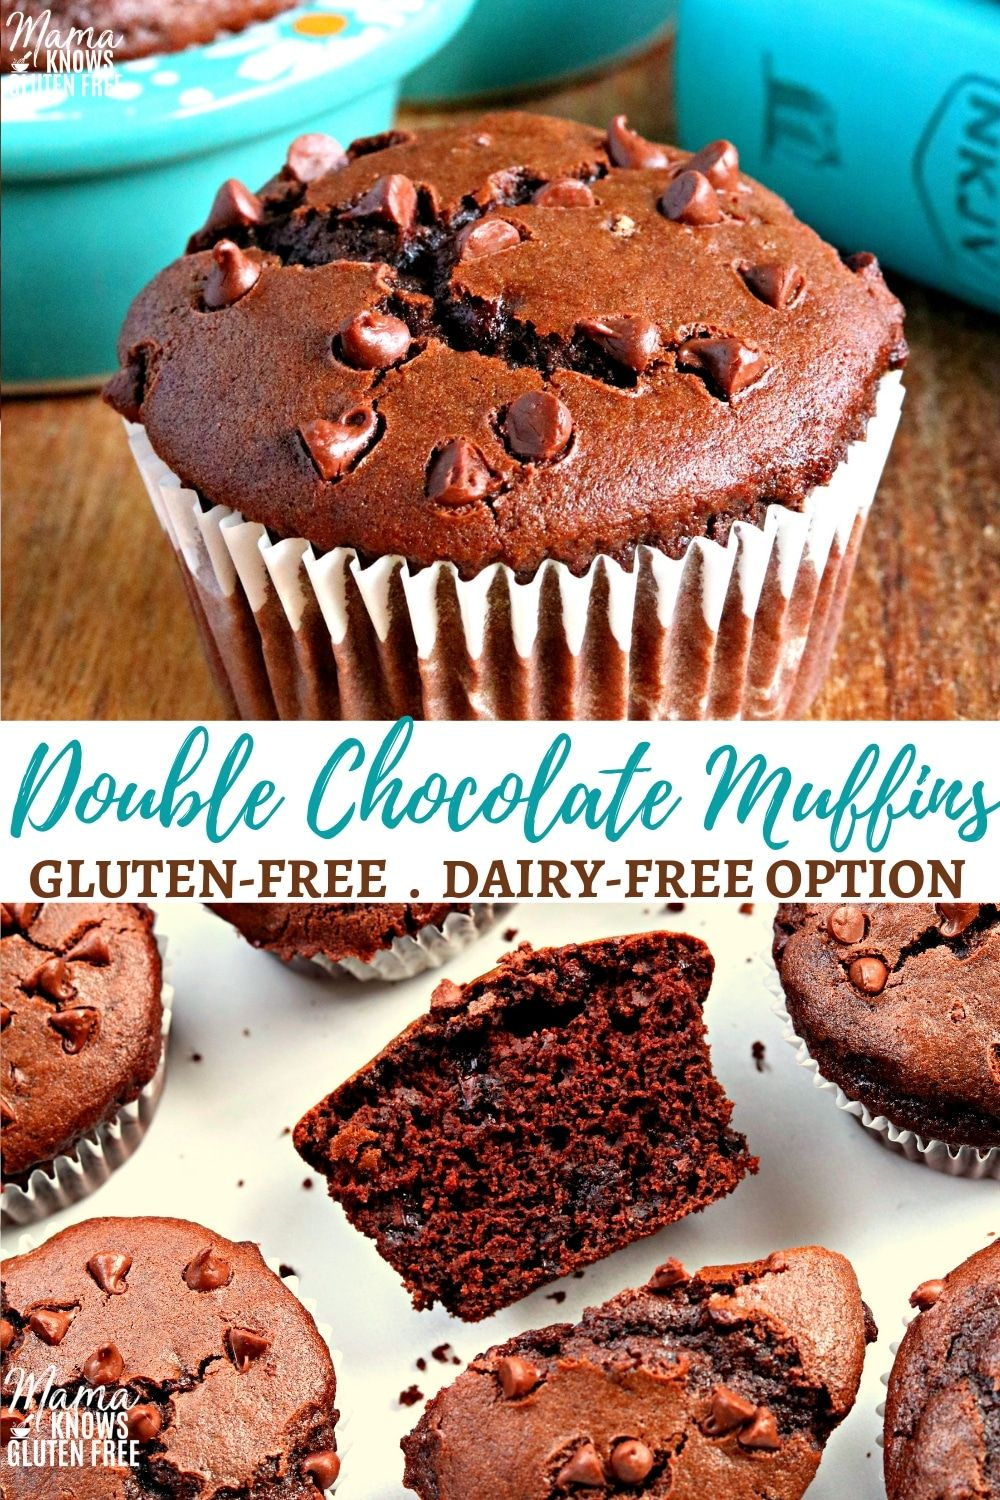 Gluten-Free Double Chocolate Muffins are a bakery style muffin that is soft, moist and chocolatey. It does not get much better than chocolate, chocolate chip muffins for breakfast! The recipe also has a dairy-free option. #glutenfreerecipes #dairyfree #glutenfreebreakfasts